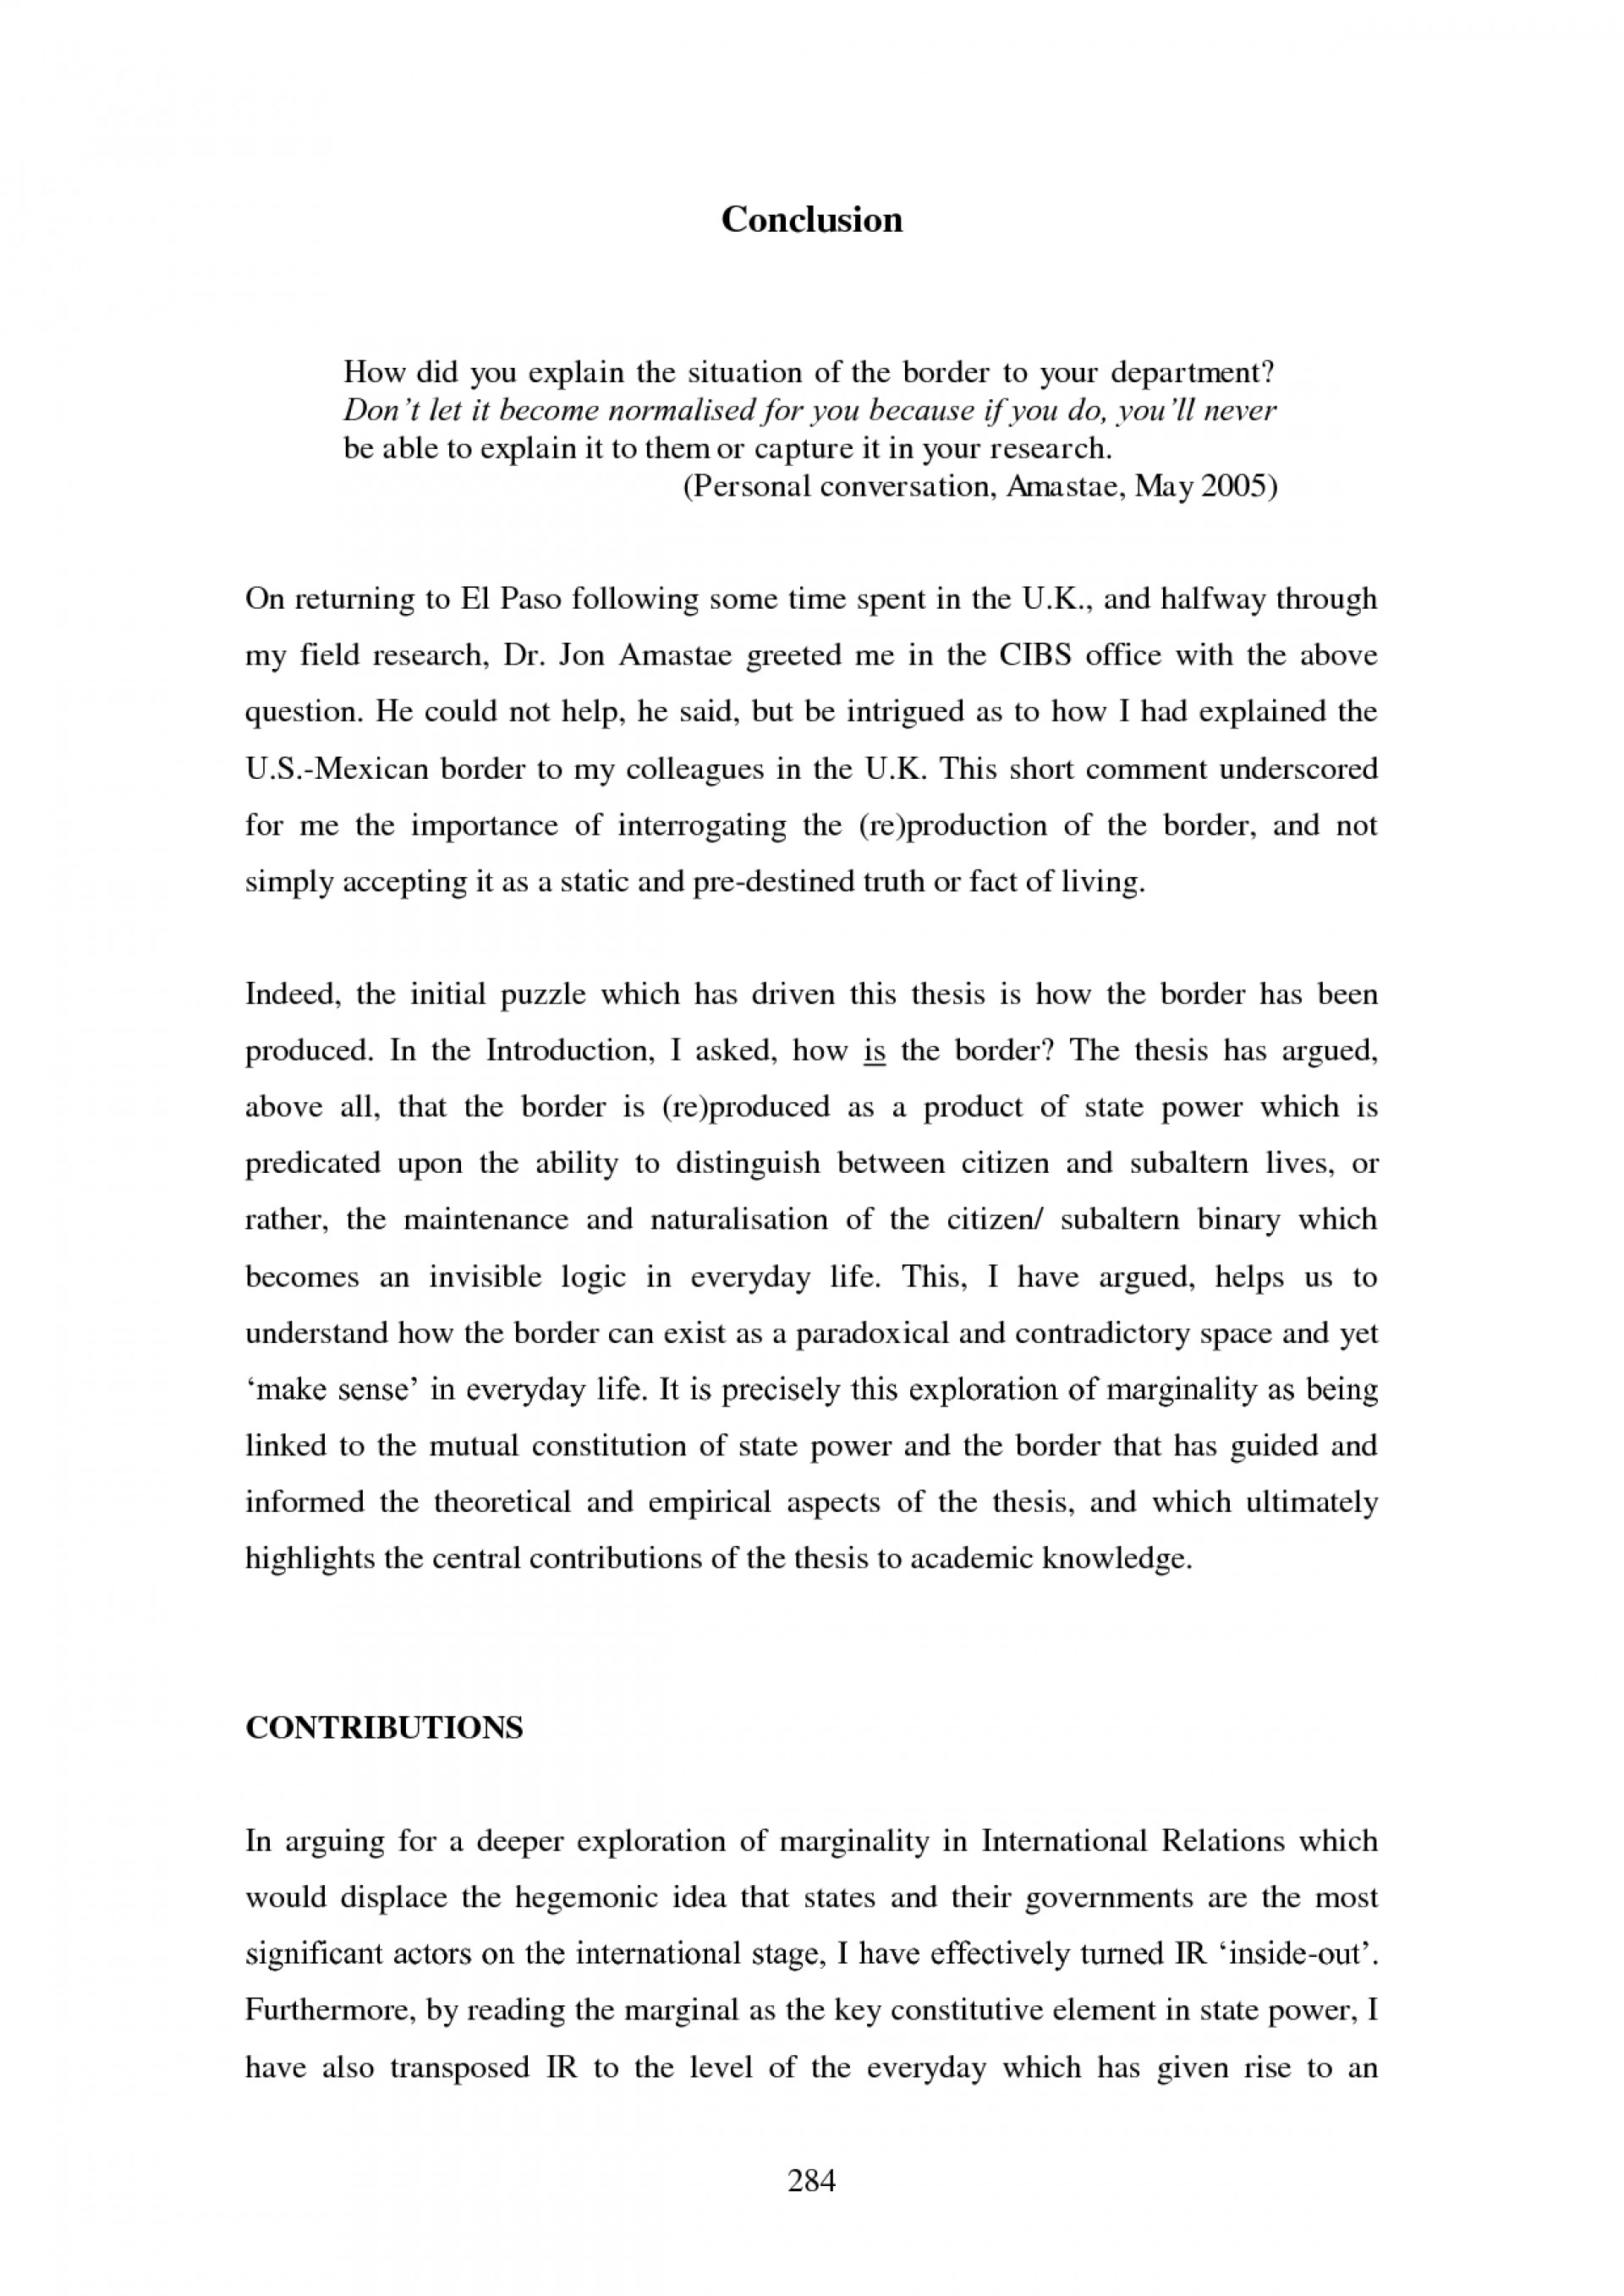 003 Research Paper Pdf Top On Cyber Security 2018 Na Tagalog Scientific Format 1920